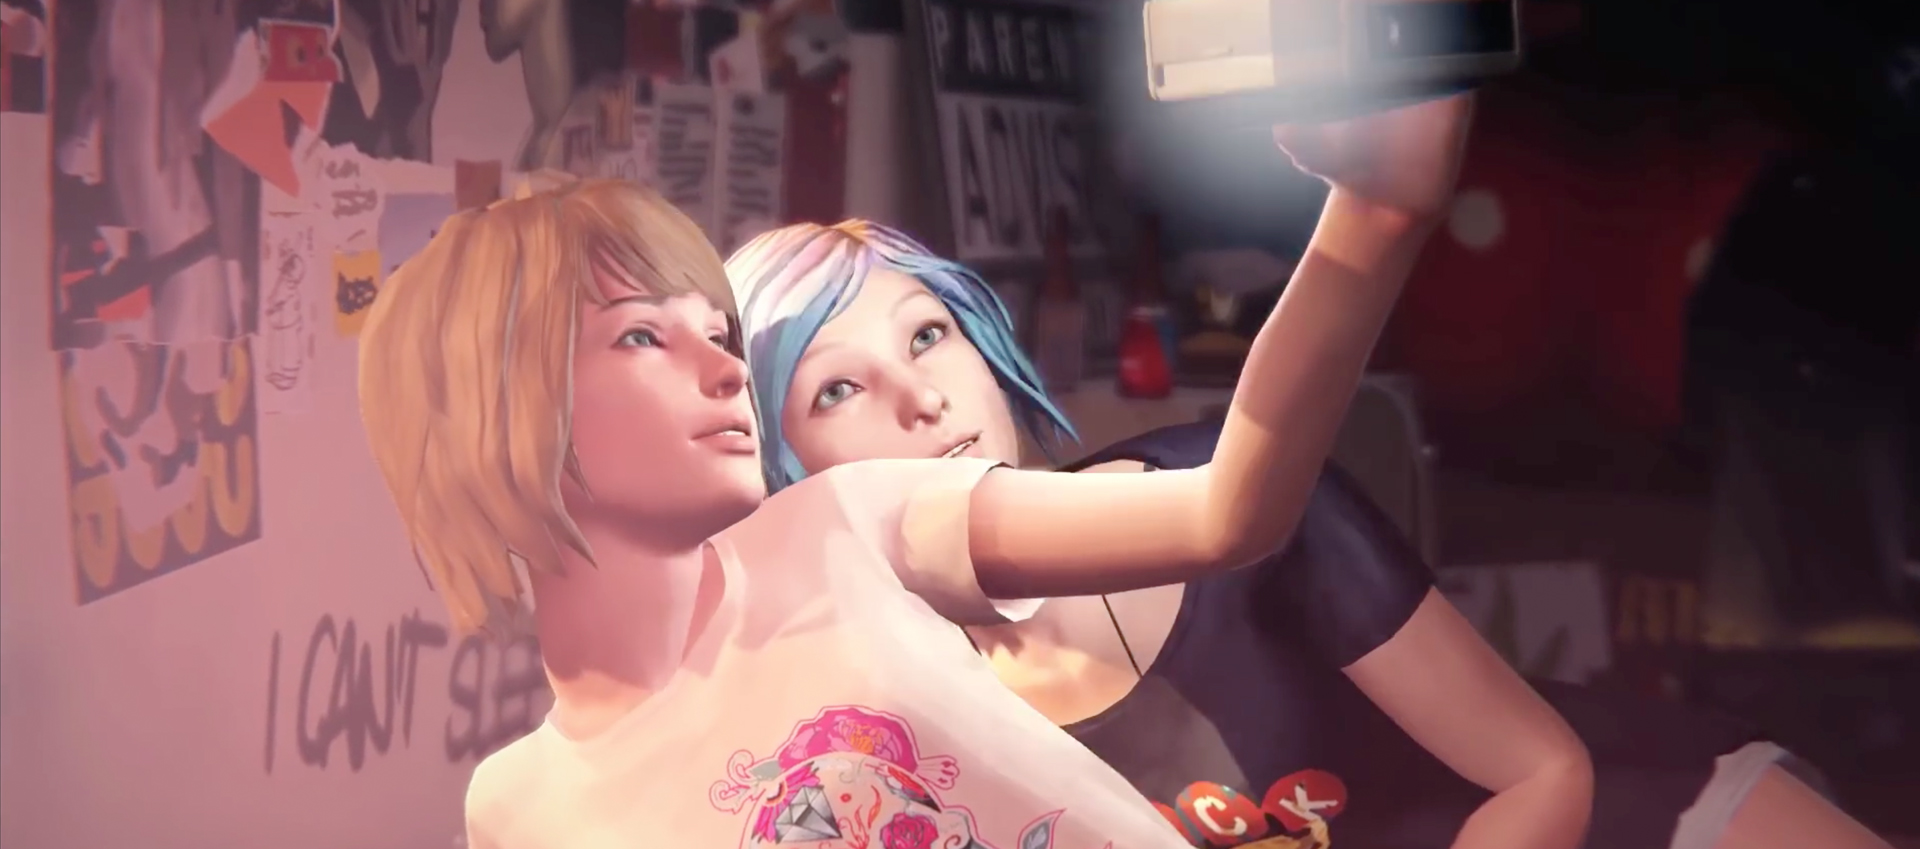 Life is Strange by Dontnod for PC, Xbox, PlayStation Game of the Year 2015: Raphael Bennett's Top 10